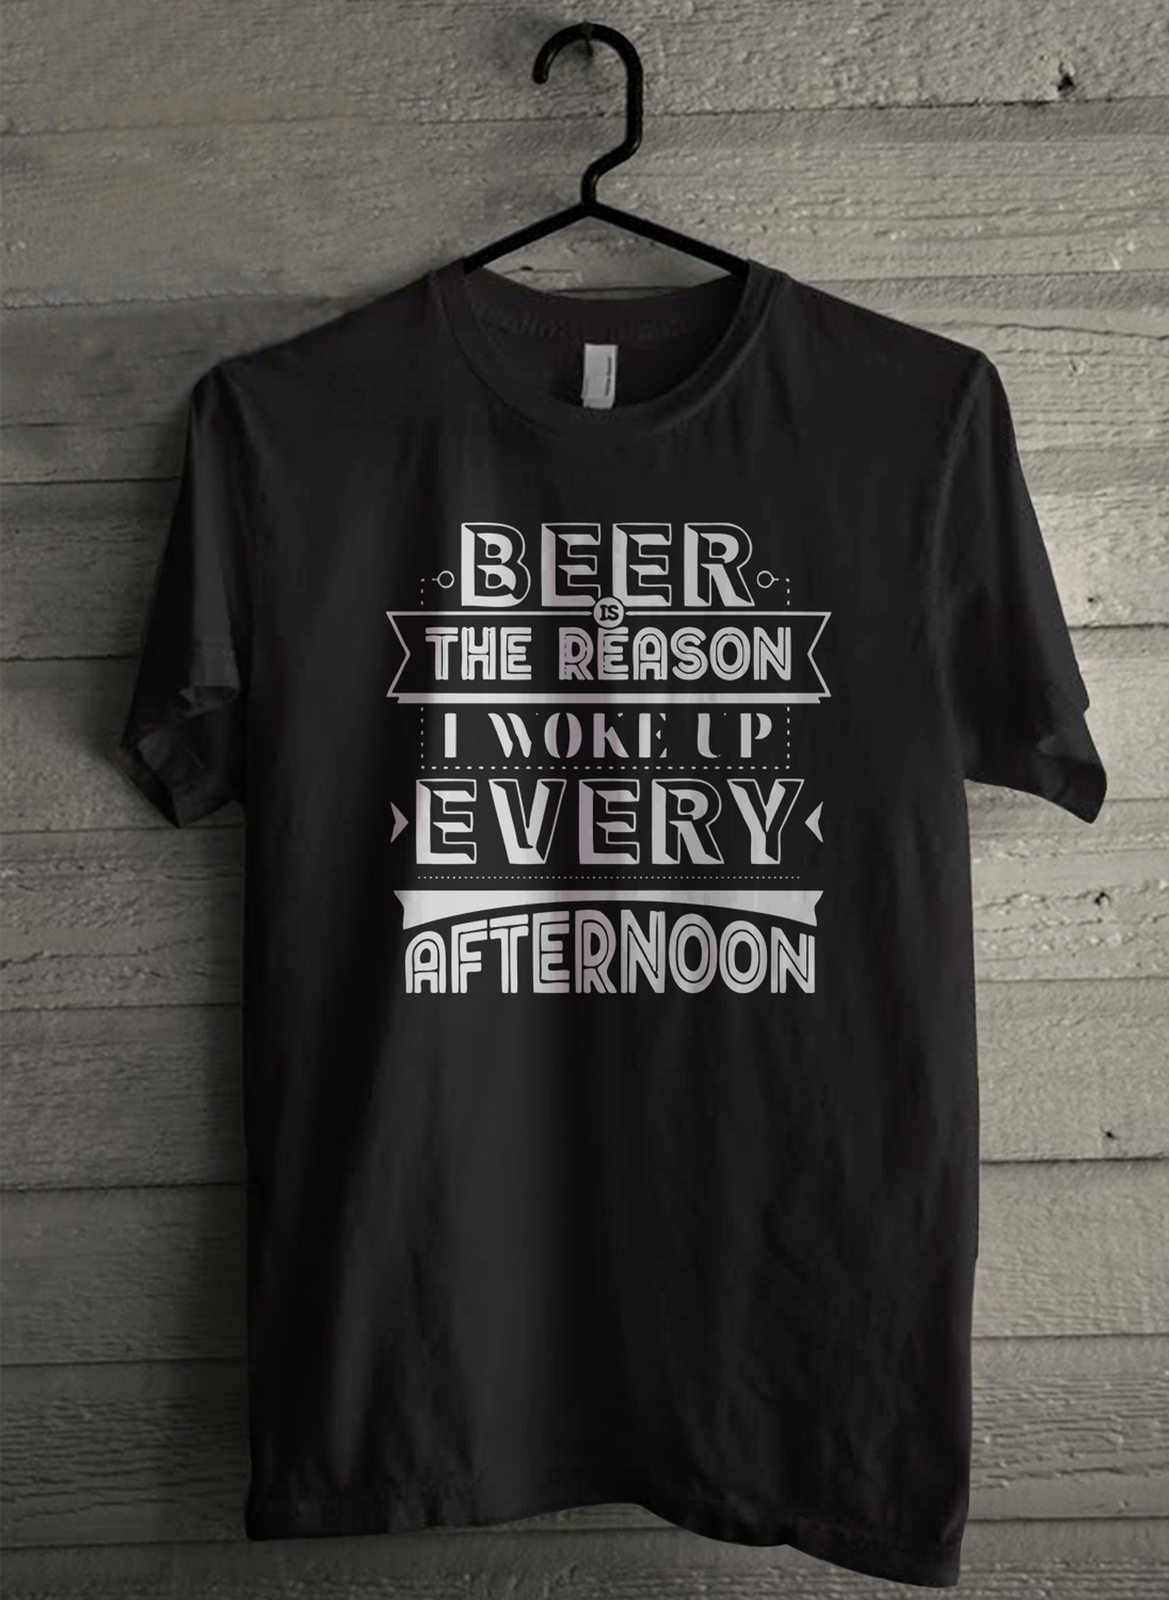 Beer is the reason i woke up every afternoon